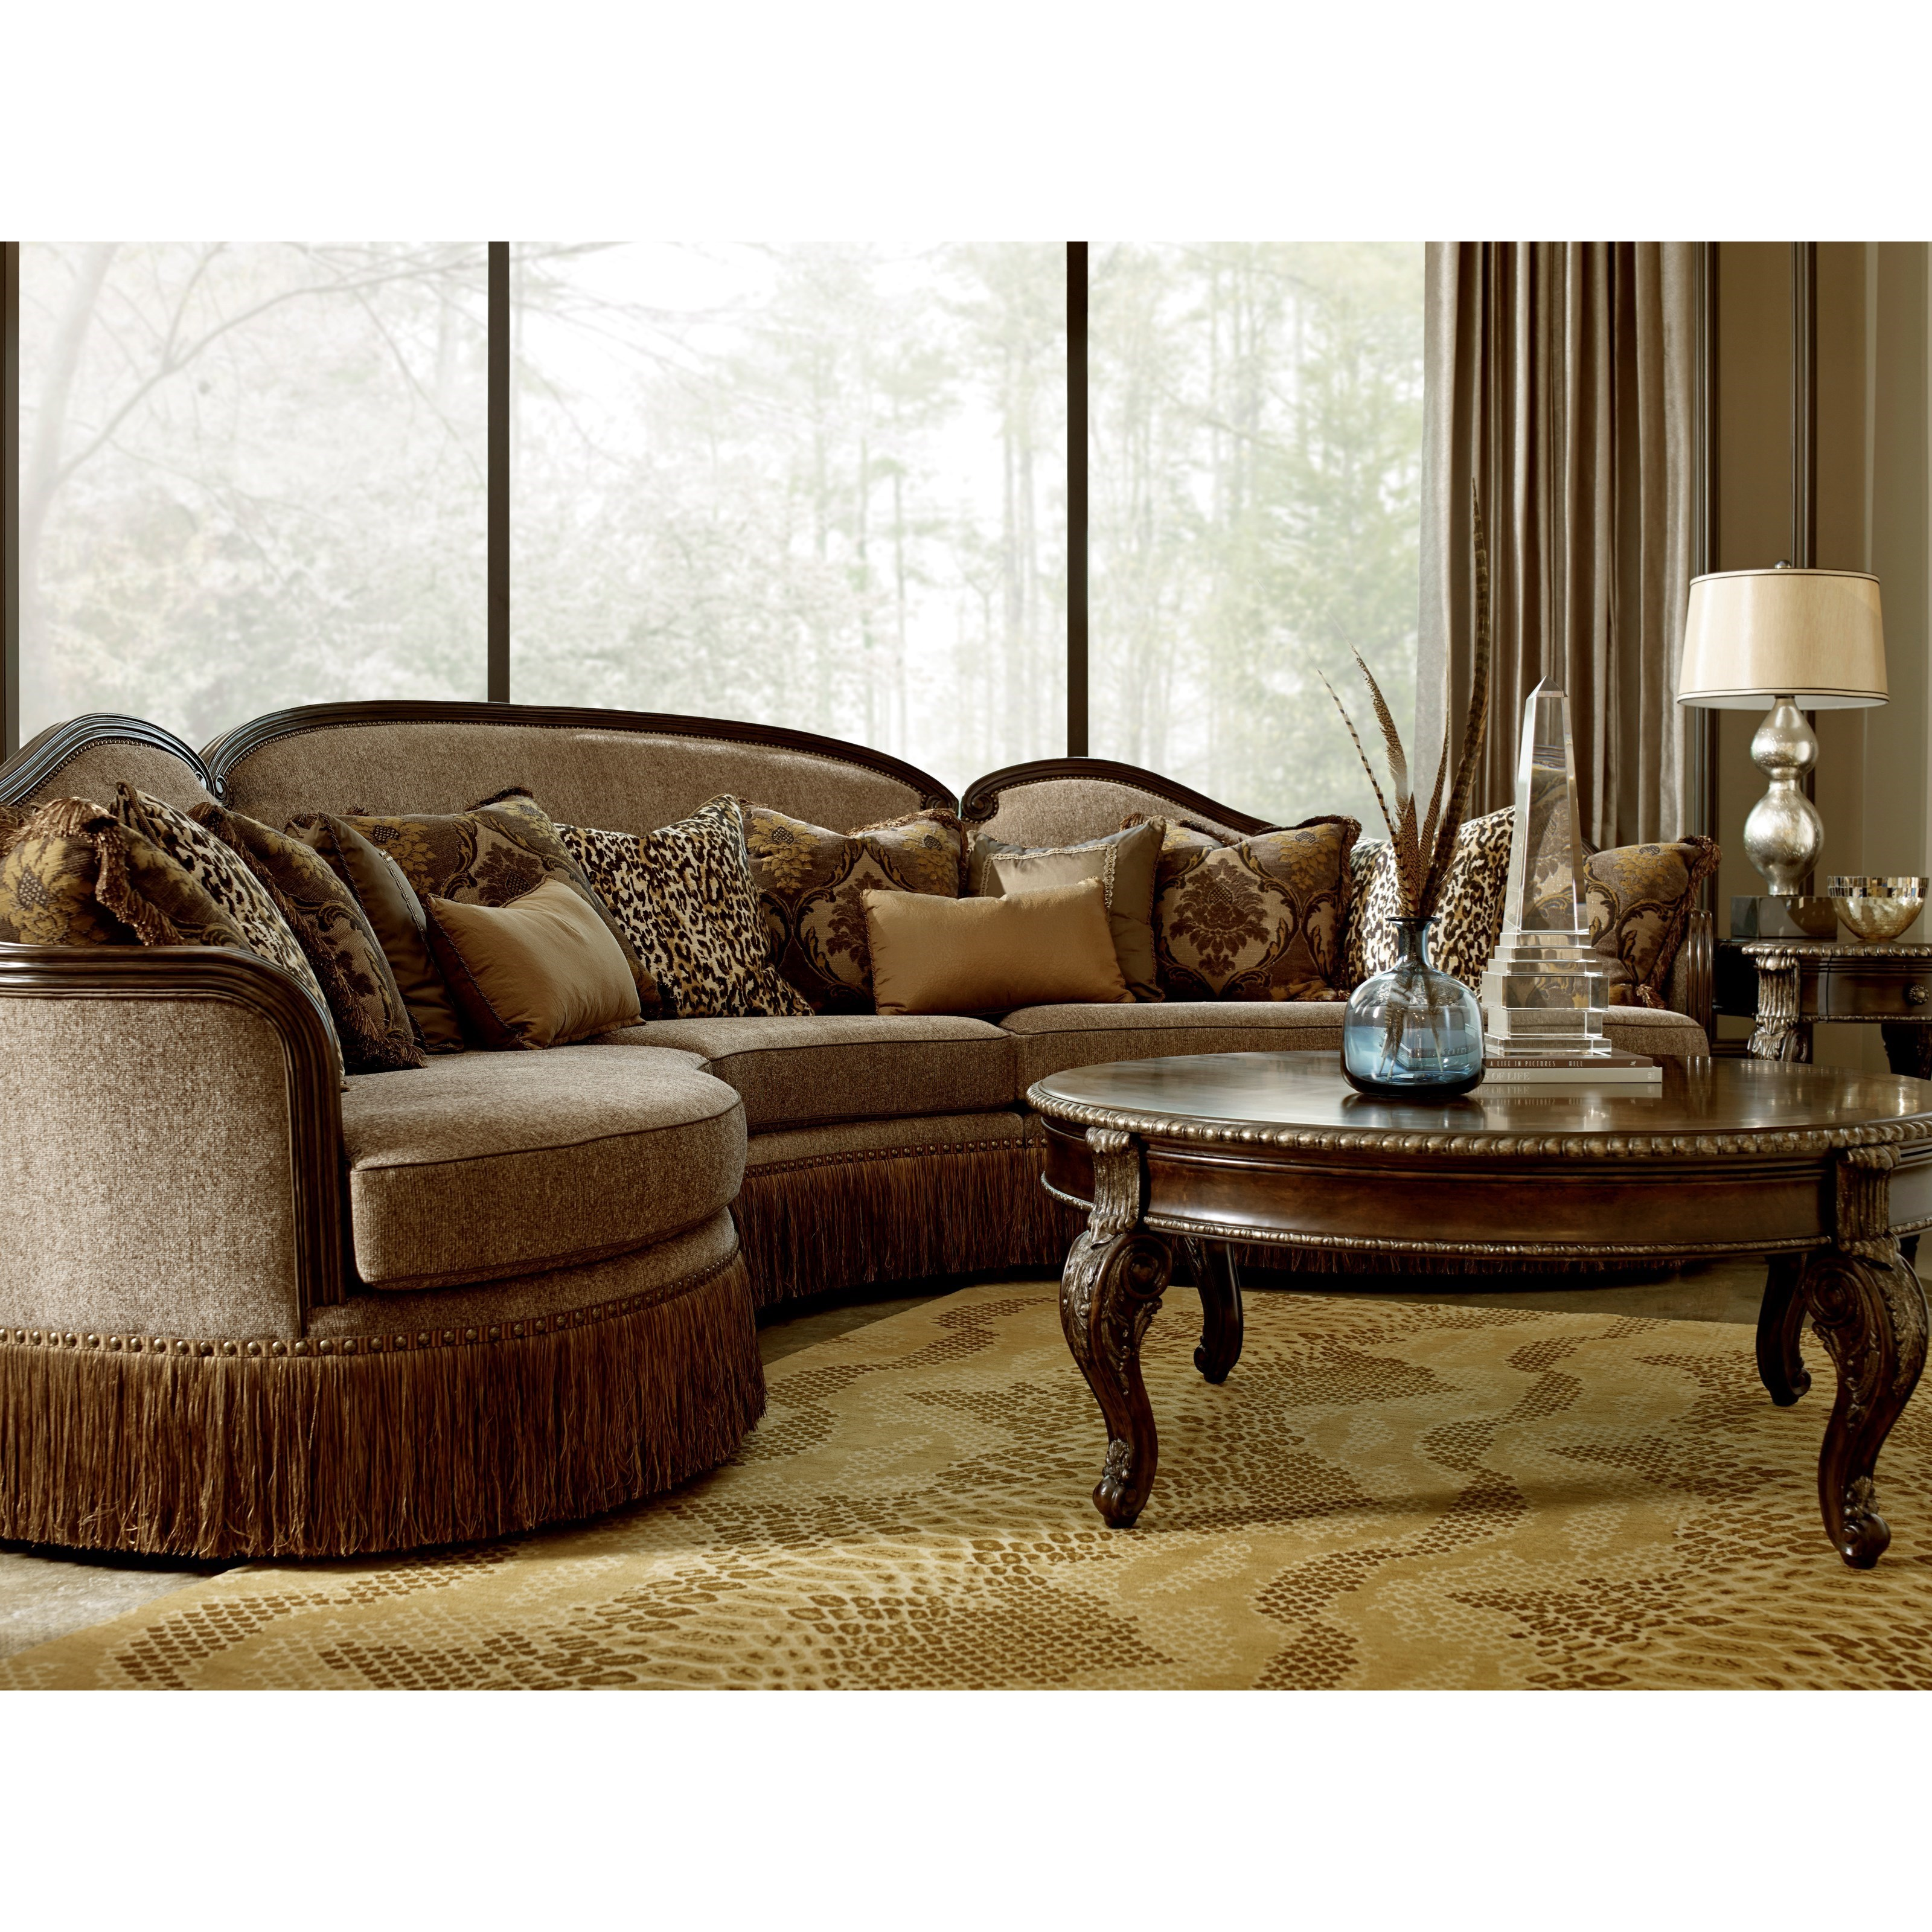 Chenille Skirted Sofa: A.R.T. Furniture Inc Giovanna Traditional 3-Piece Curved